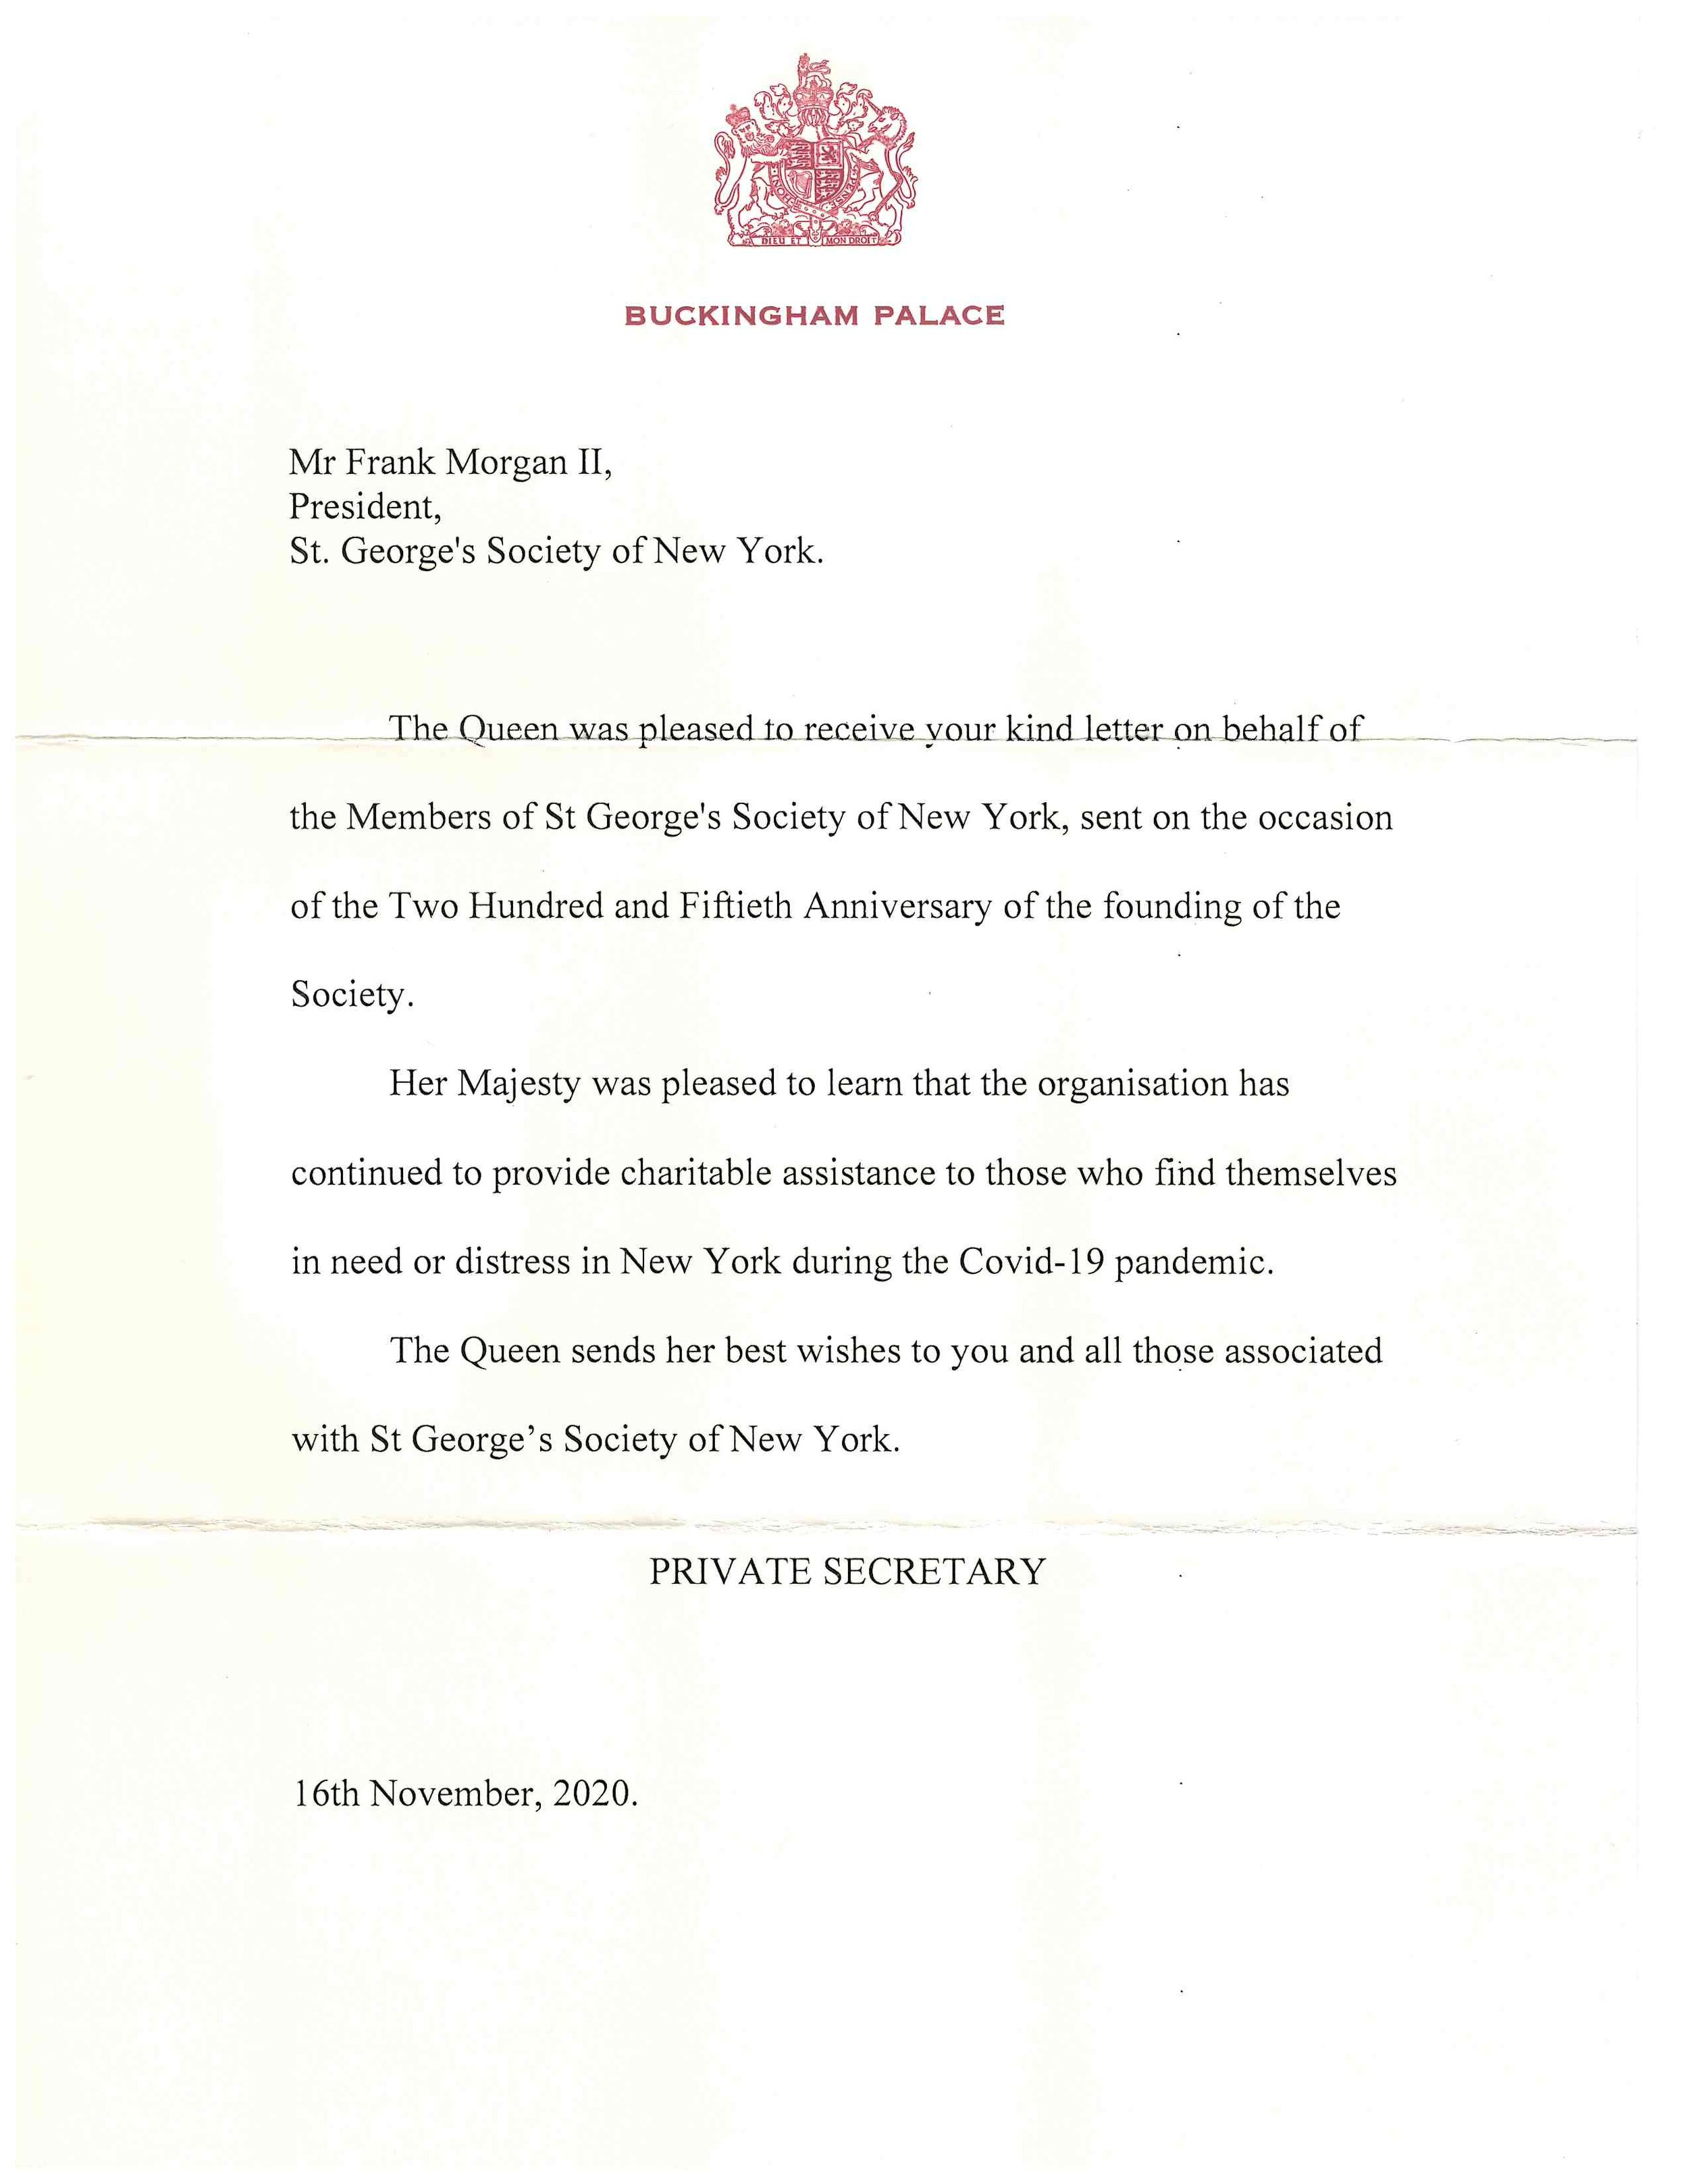 Birthday Wishes From Buckingham Palace St George S Society Of New York